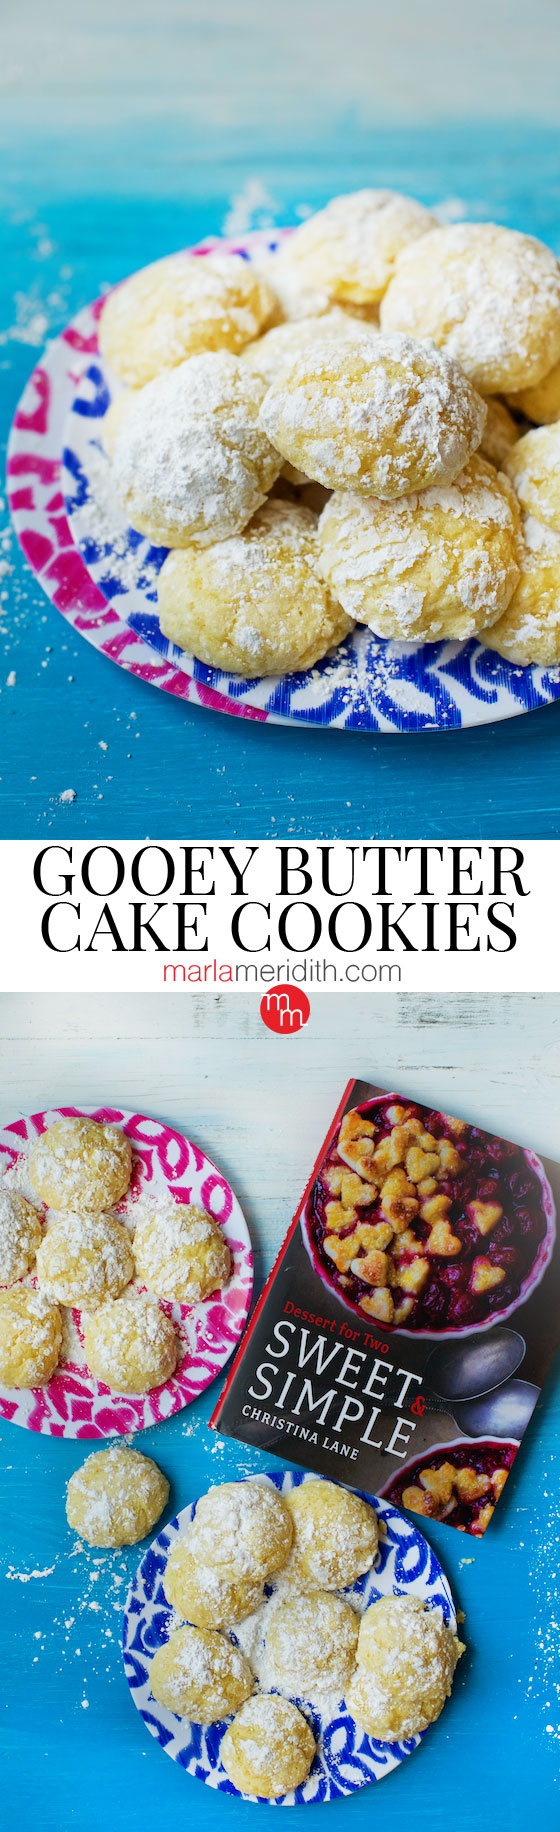 Gooey Butter Cake Cookies from Sweet & Simple cookbook @dessertfortwo | MarlaMeridith.com ( @marlameridith )